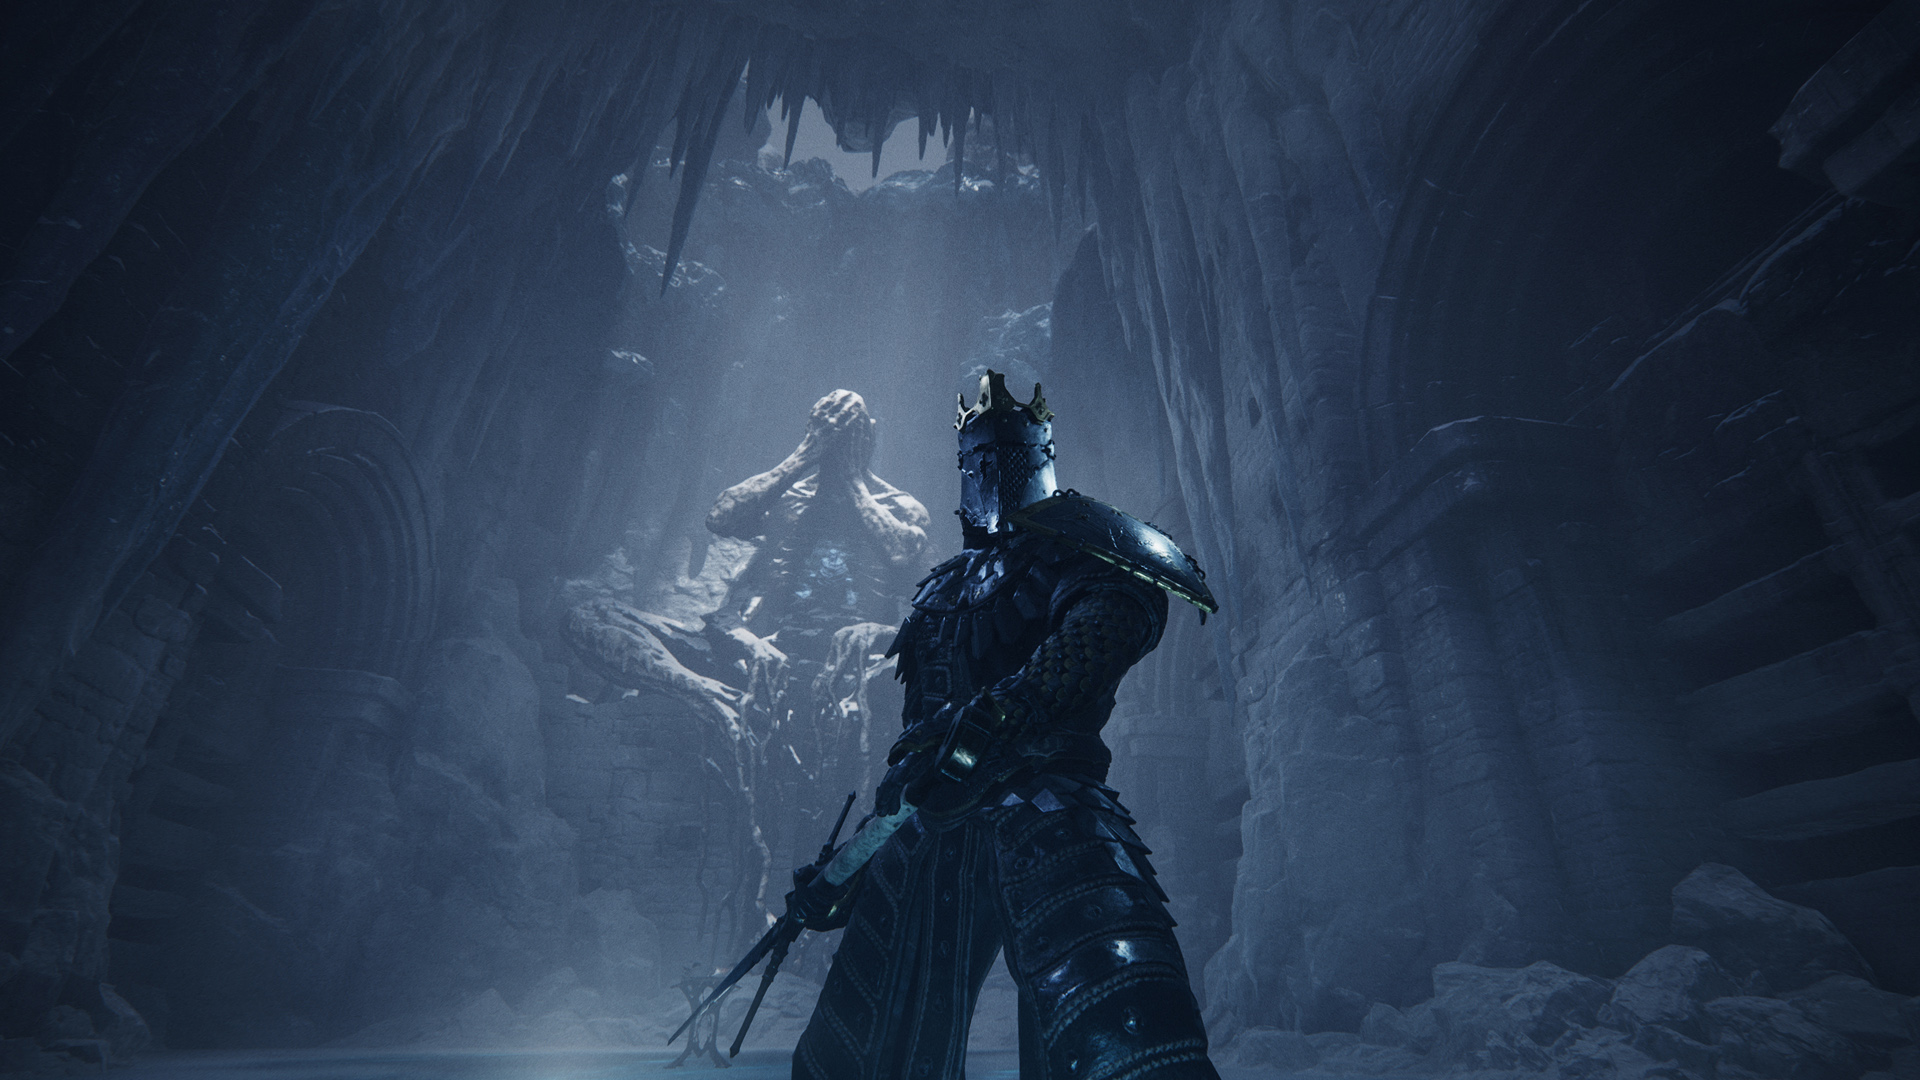 A Screenshot From Mortal Shell Showing An Armored Warrior